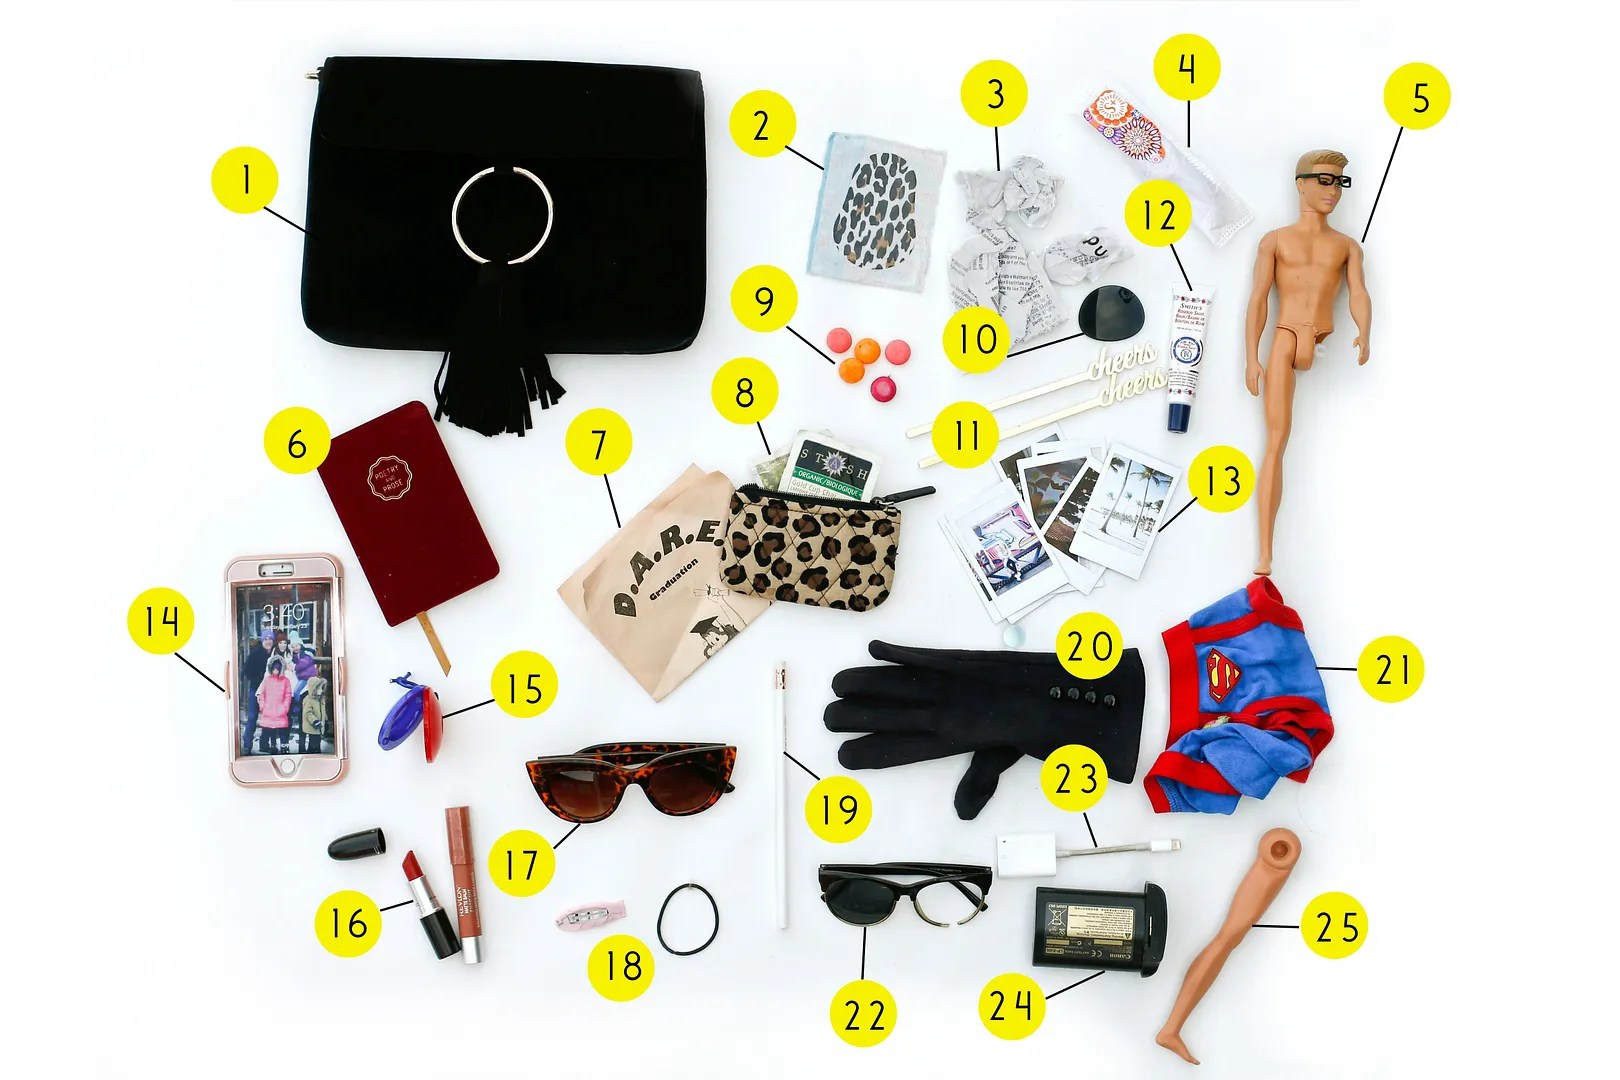 photo whats in my bag.best_zps8qrhl0if.jpg